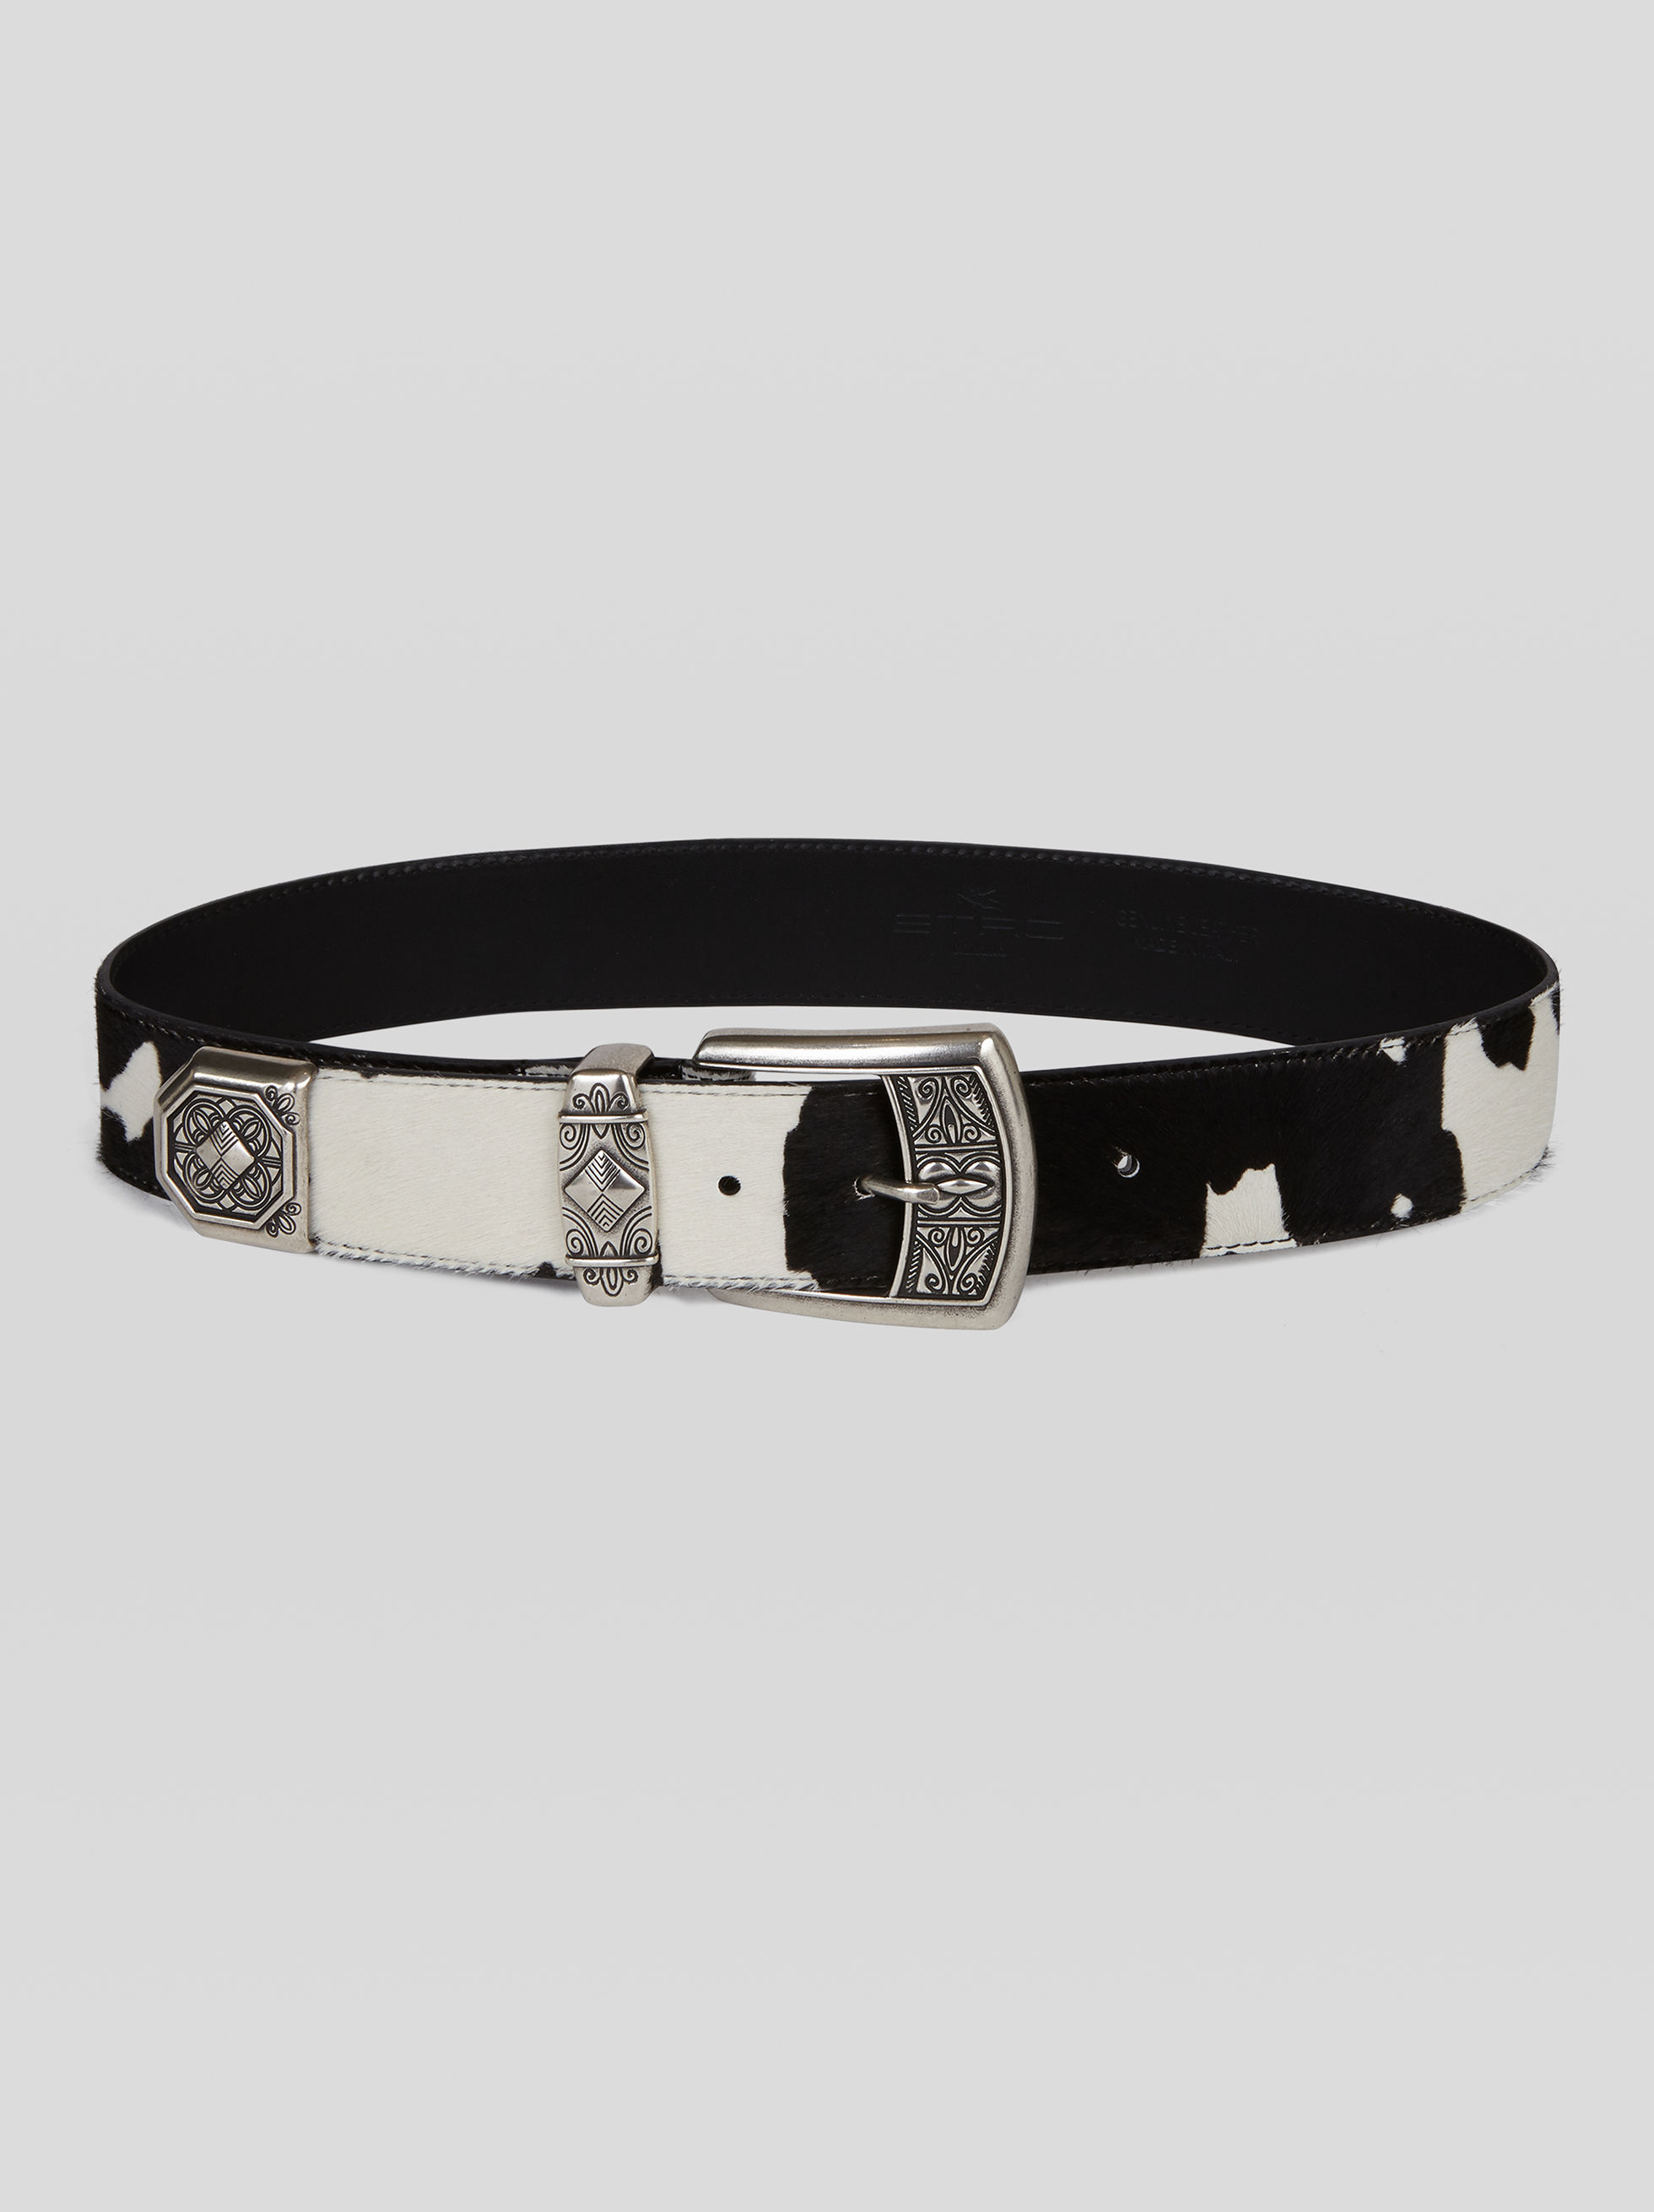 LEATHER BELT WITH ANIMAL PRINT